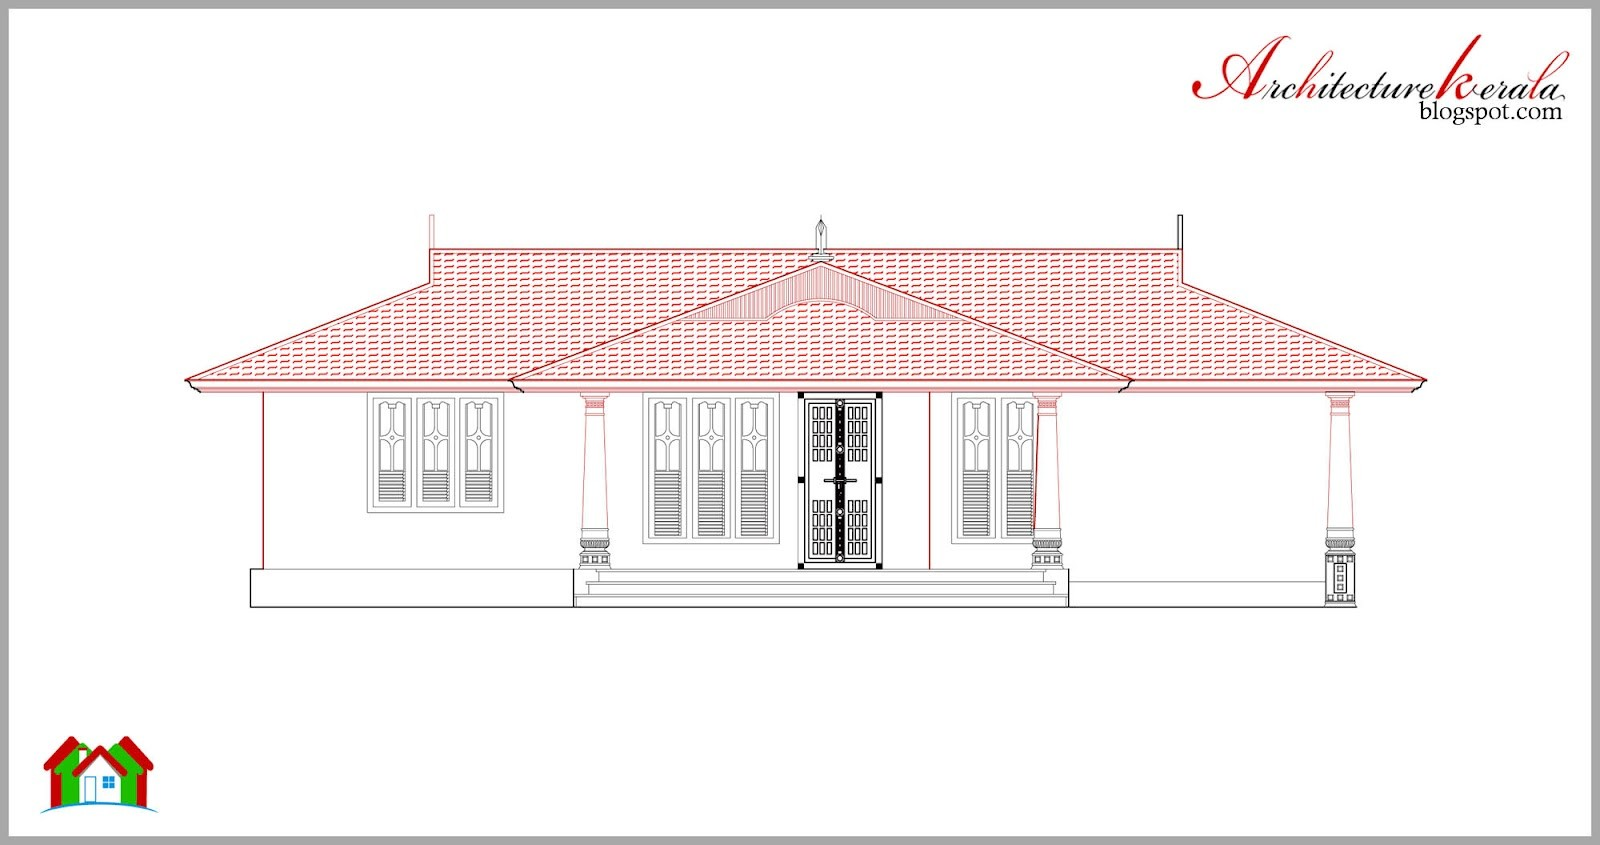 Plan Elevation Section Pdf : Building drawing plan elevation section pdf at getdrawings